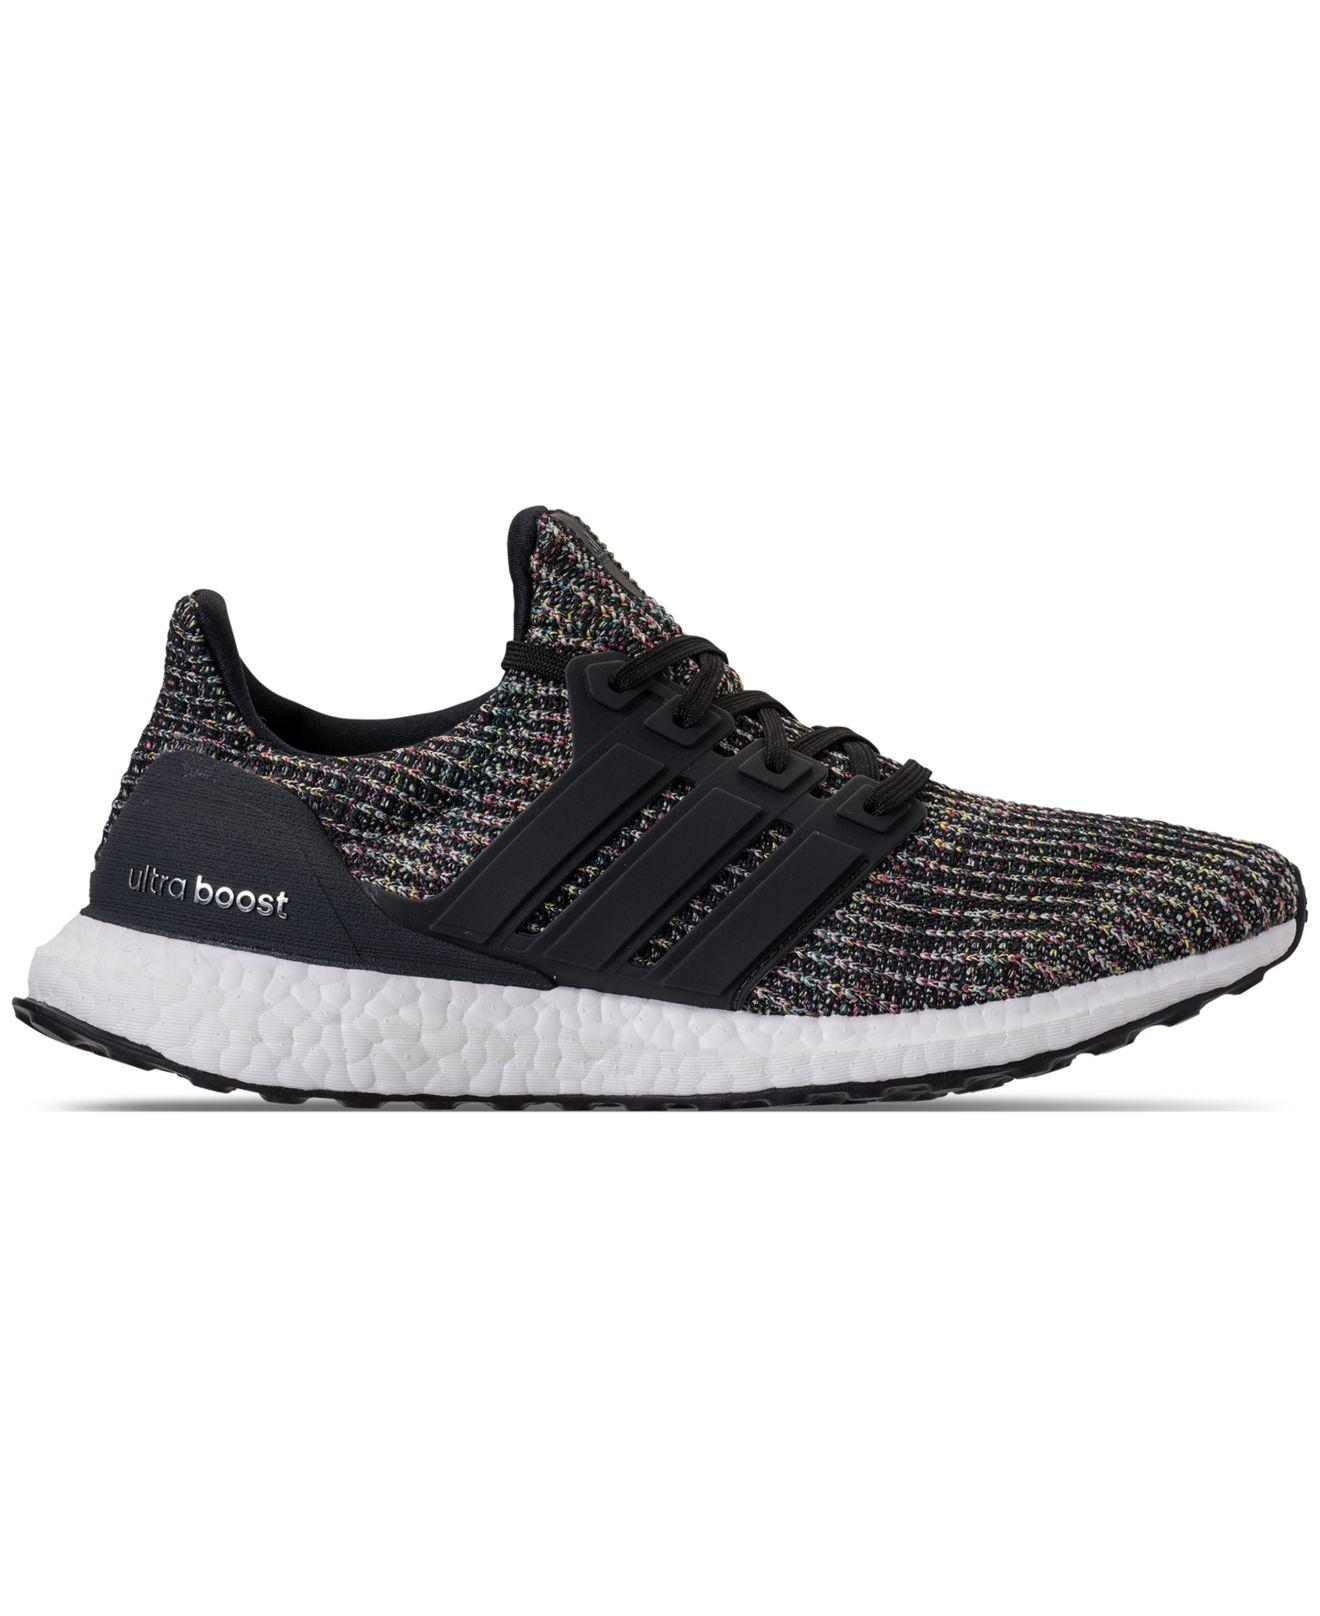 Lyst - adidas Ultraboost Running Sneakers From Finish Line in Black for Men  - Save 51.111111111111114% 5c6d571e1898